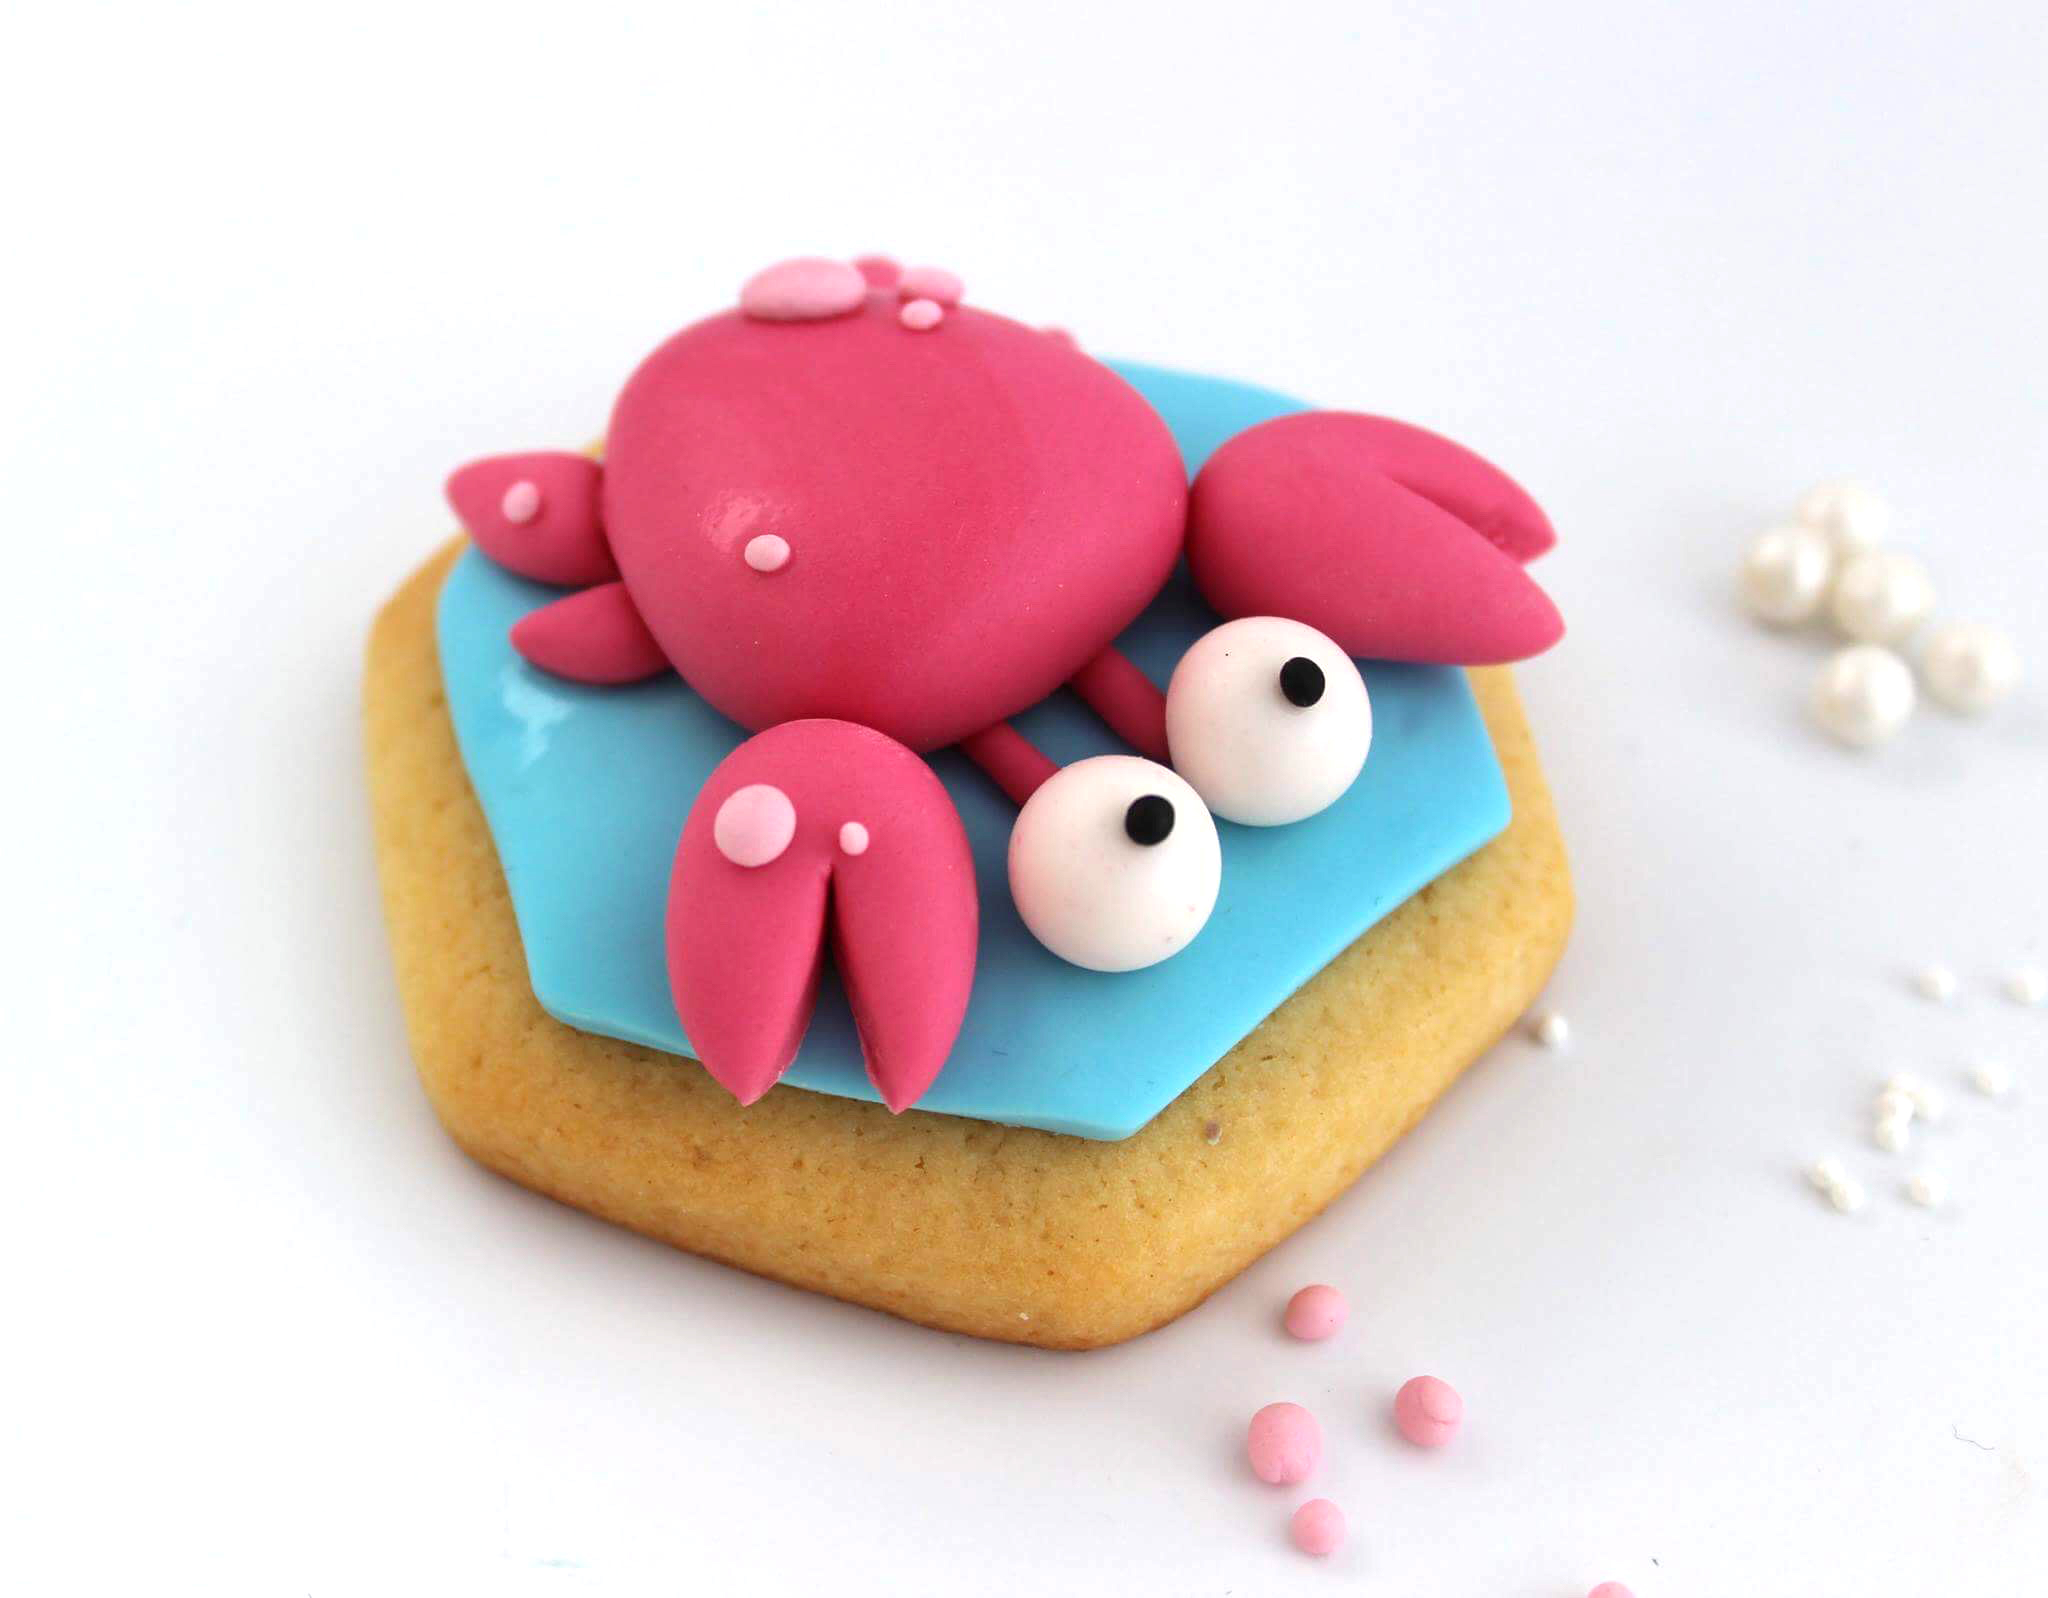 sff17_CrabTutorial-Monique-Ascanelli-The-Cake-Topper-Step6.JPG#asset:17077